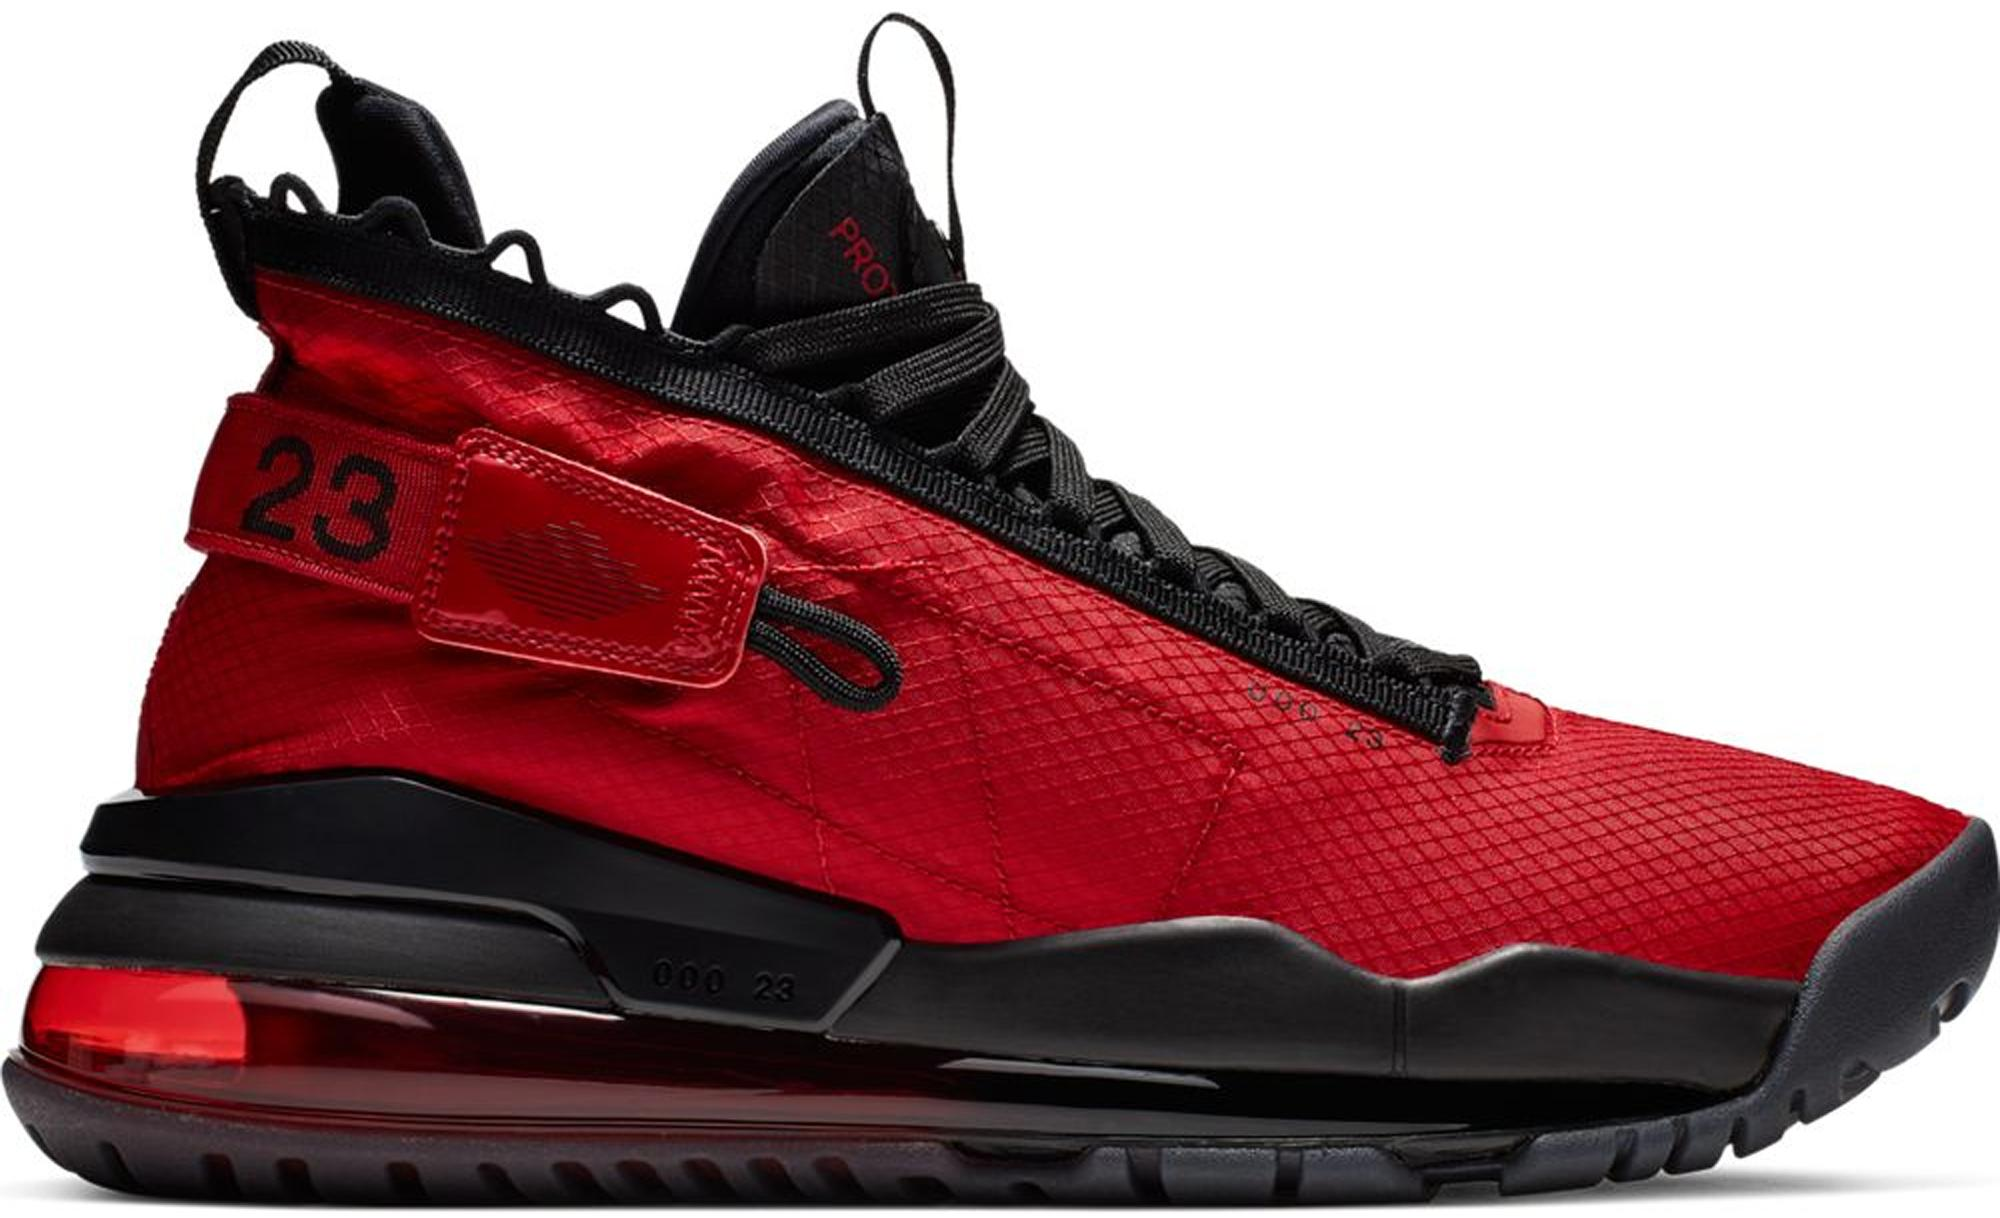 bdea83d7 Lyst - Nike Proto Max 720 Gym Red Black in Red for Men